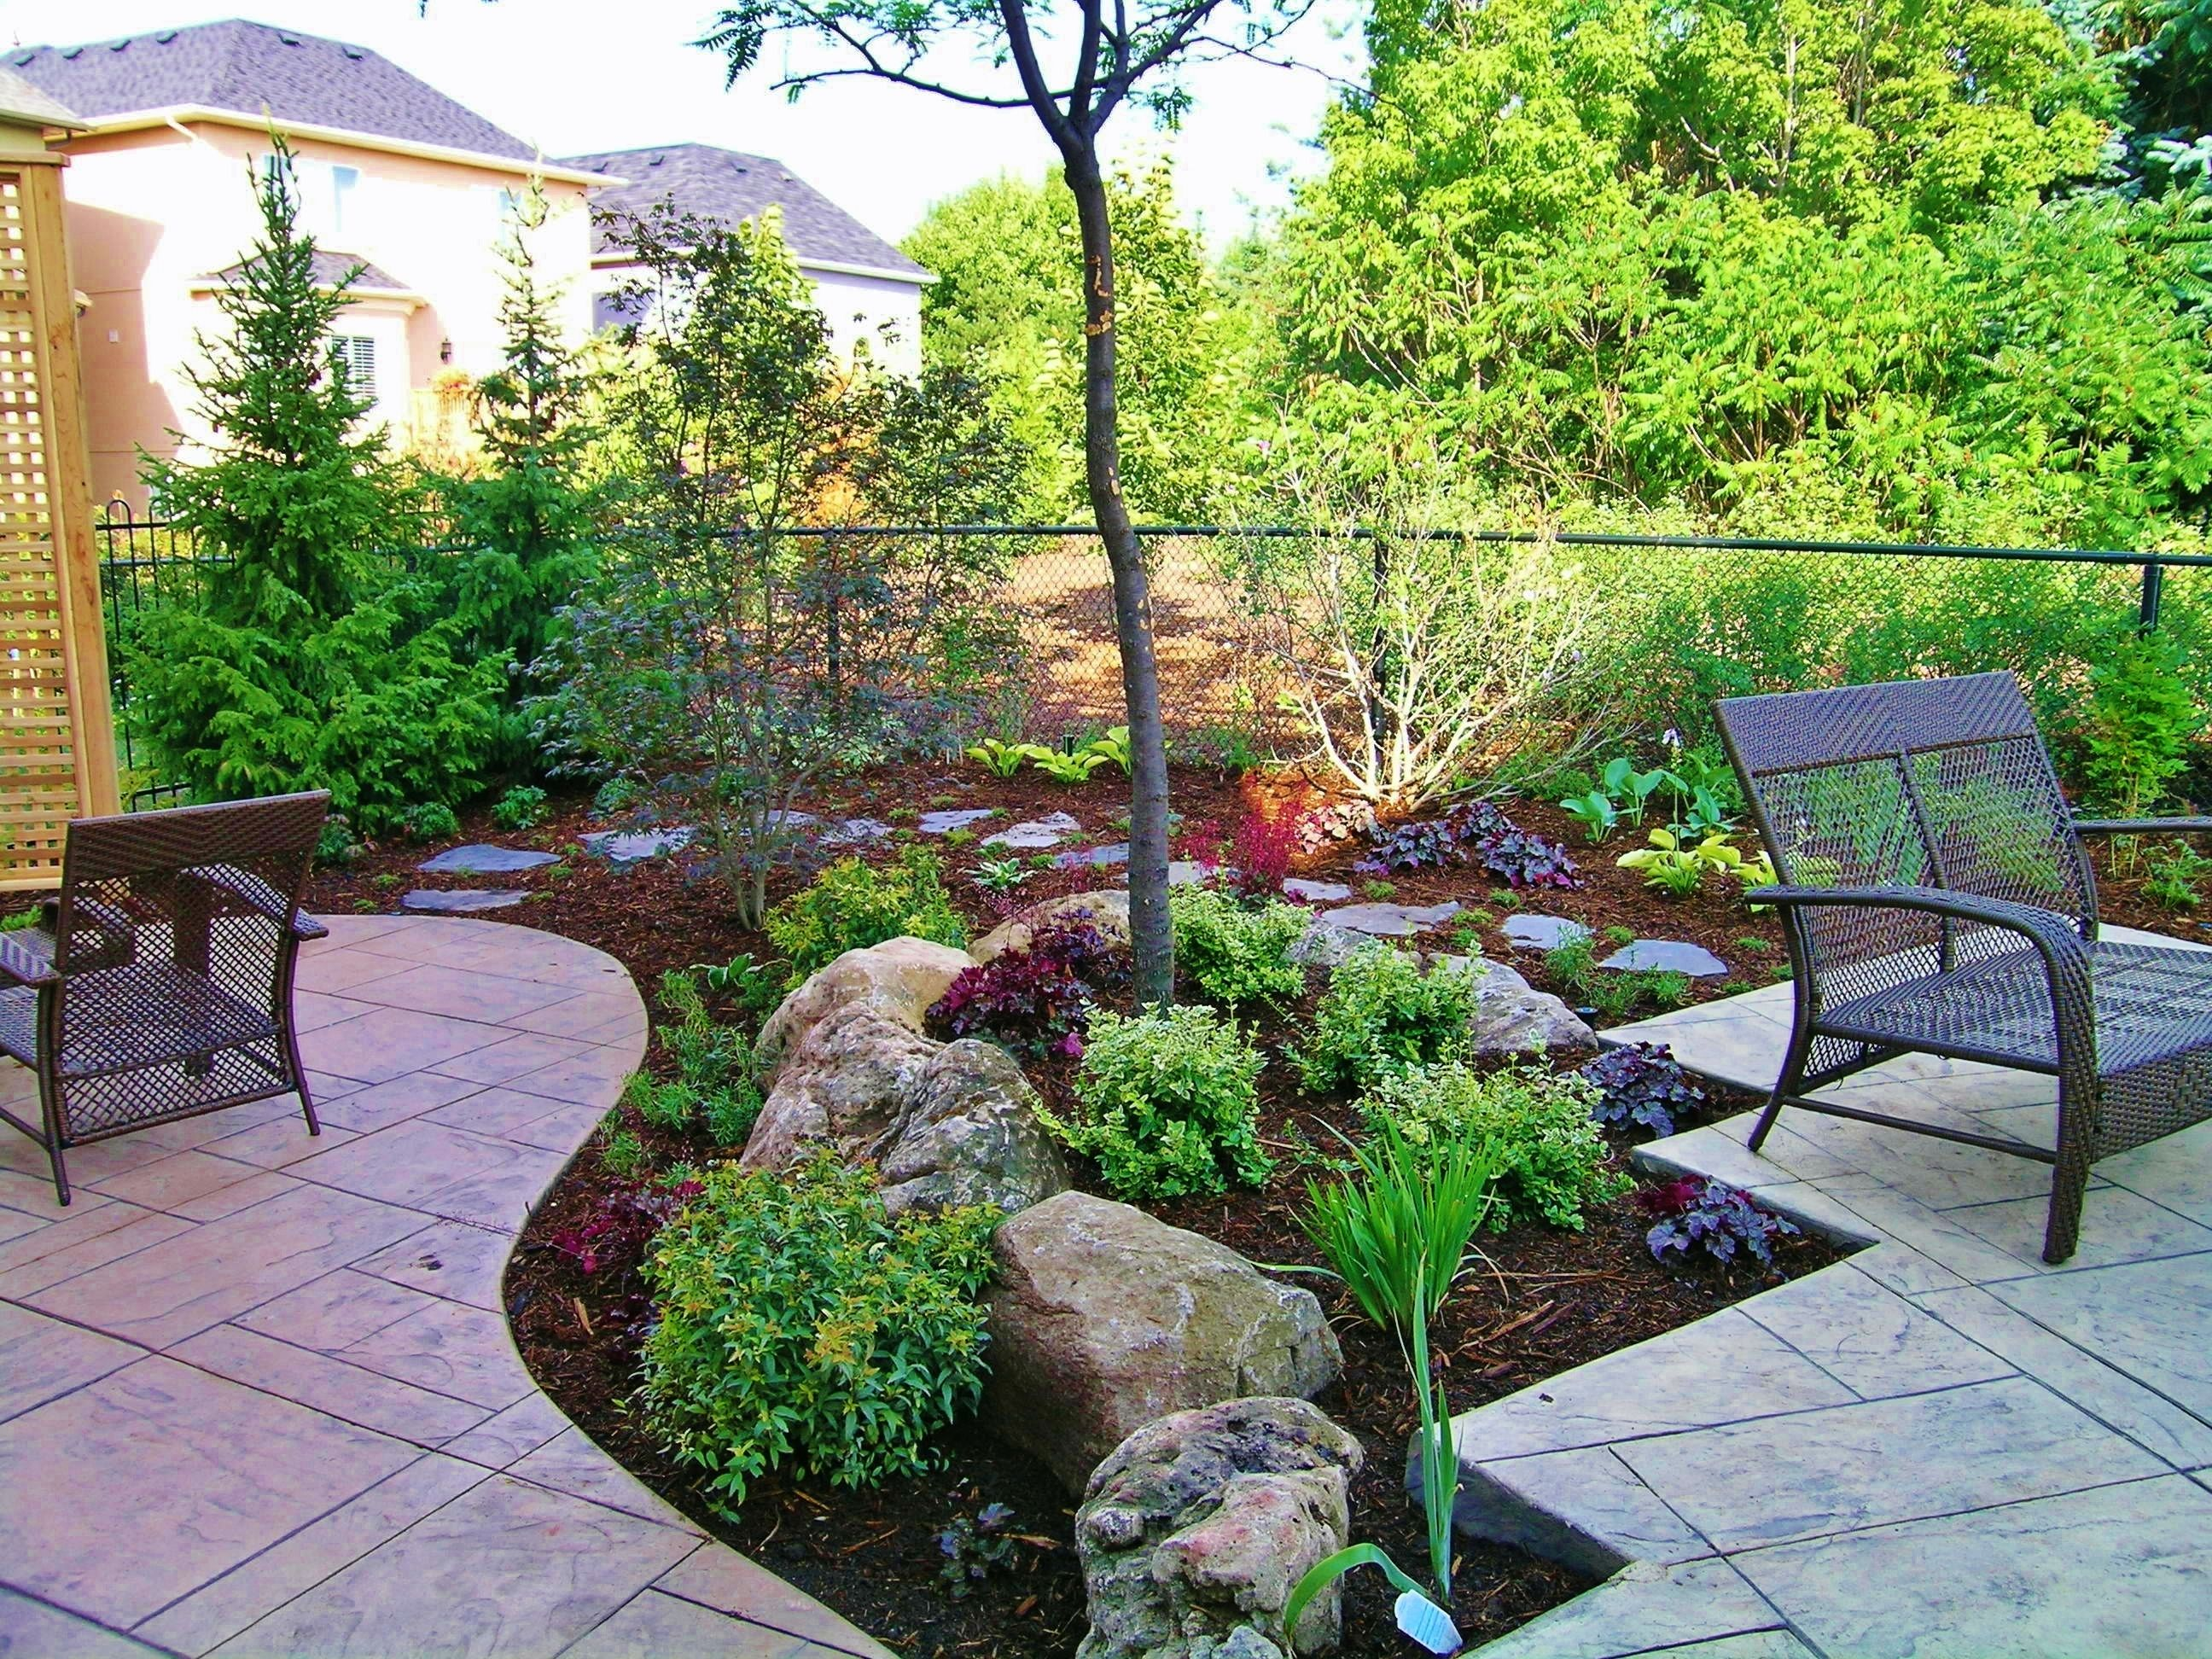 Backyard Without Grass Backyard Landscaping Plans Small